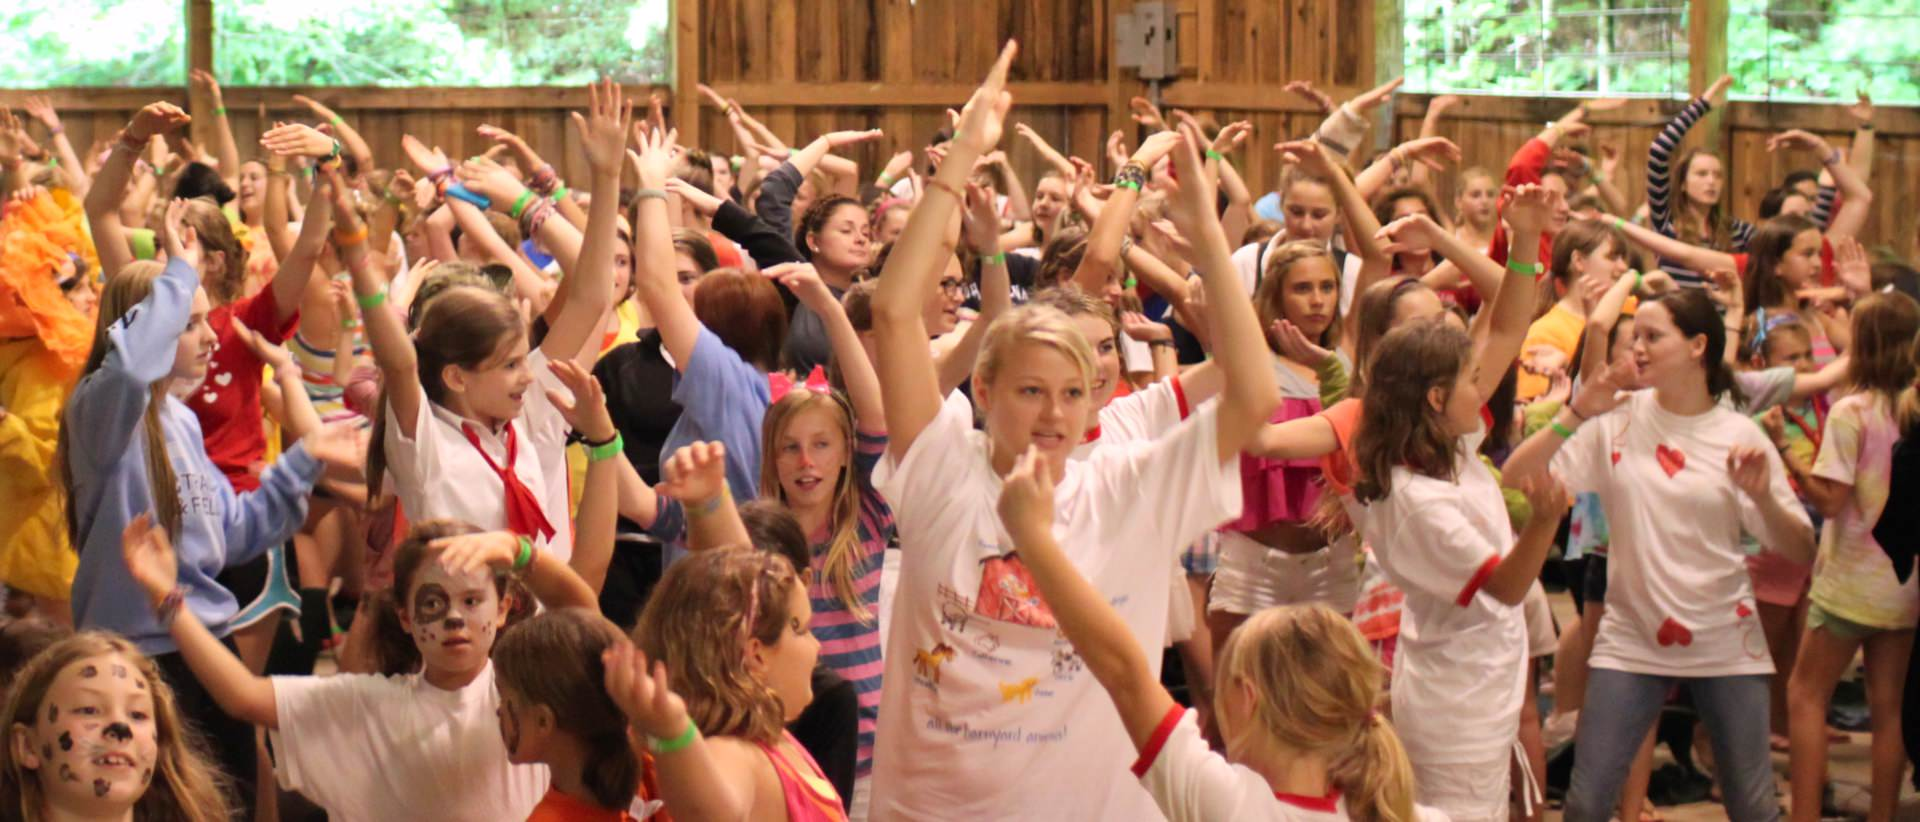 crazy camp group dance